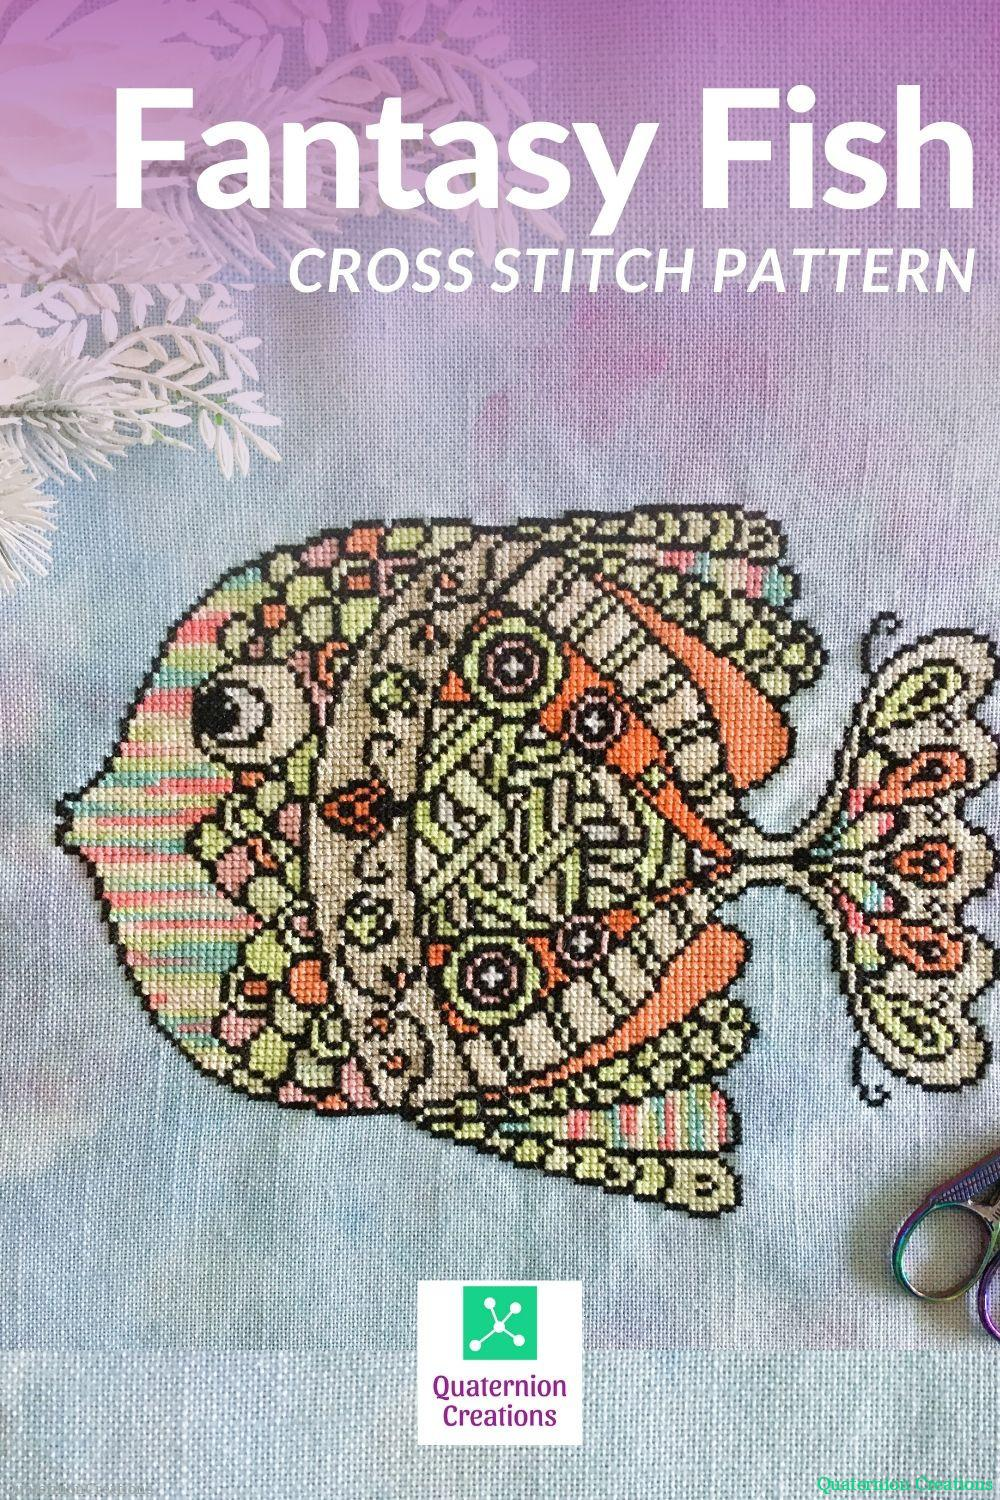 Fantasy Fish cross stitch pattern - modern embroidery - choose your own colors stitching